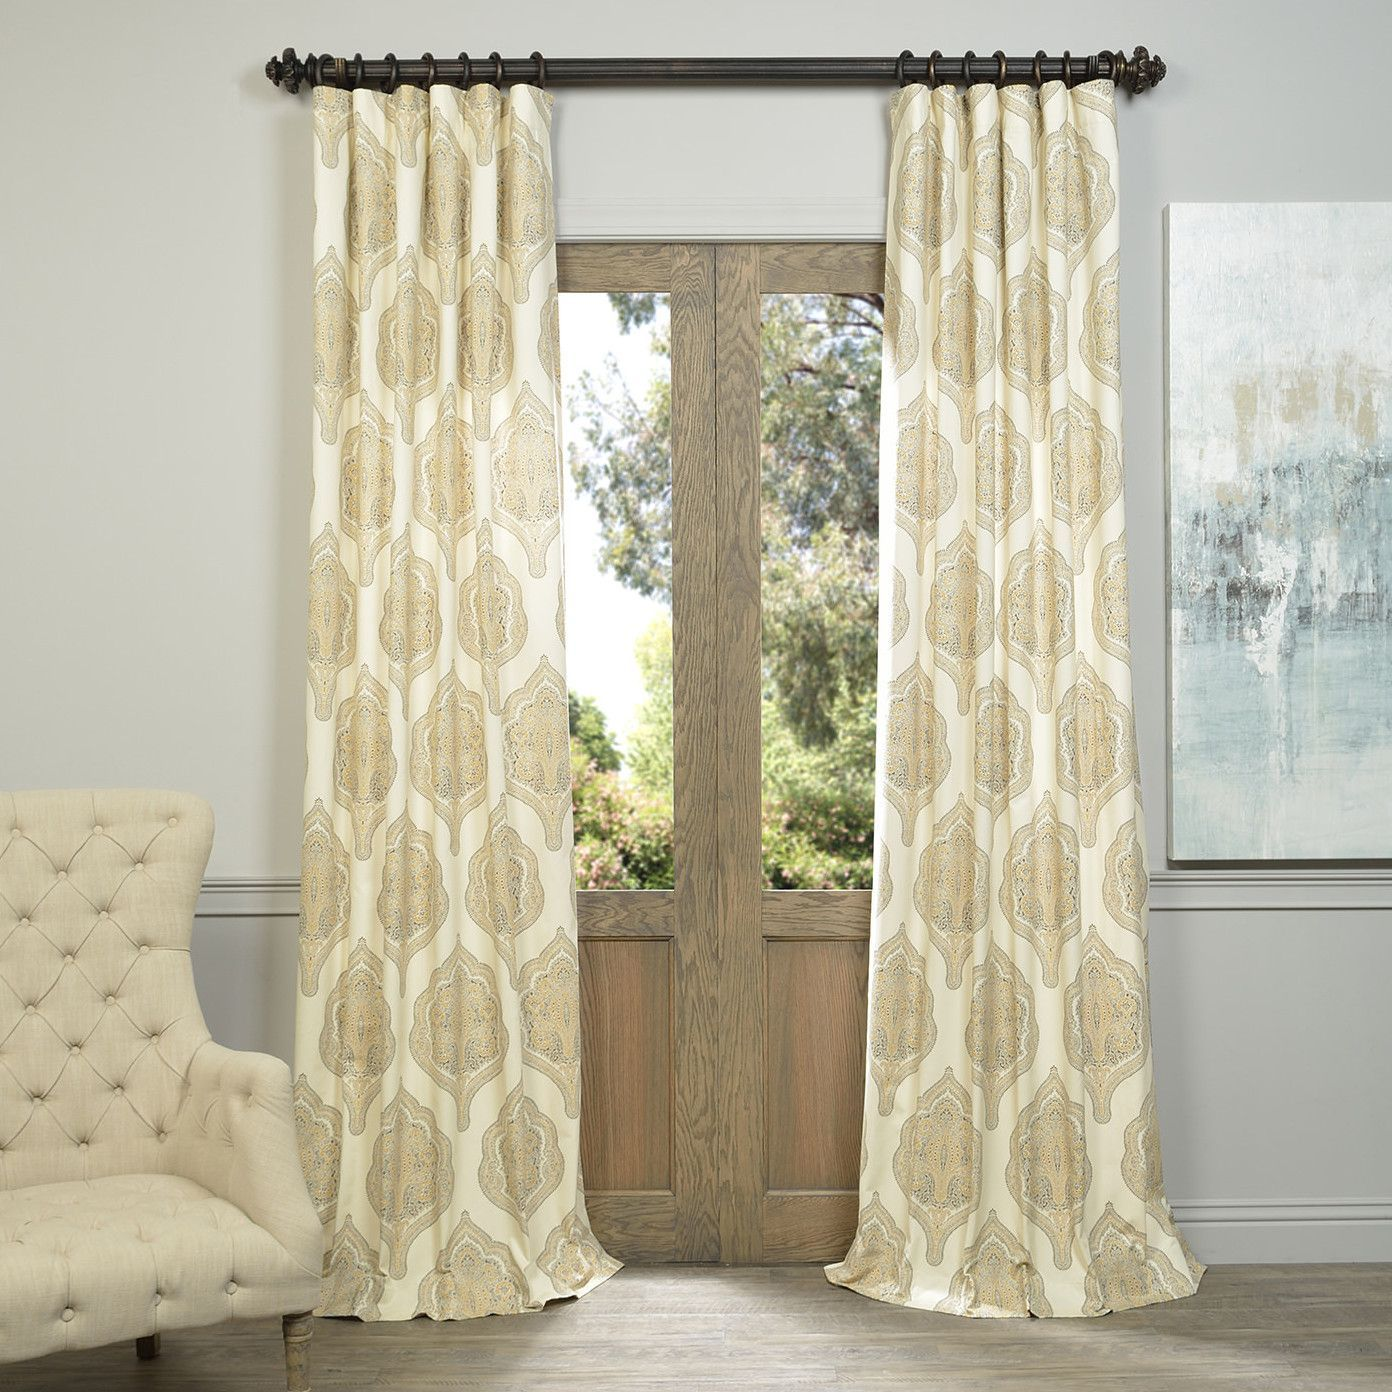 Arabesque Curtain Panel   Products   Pinterest   Arabesque and Products